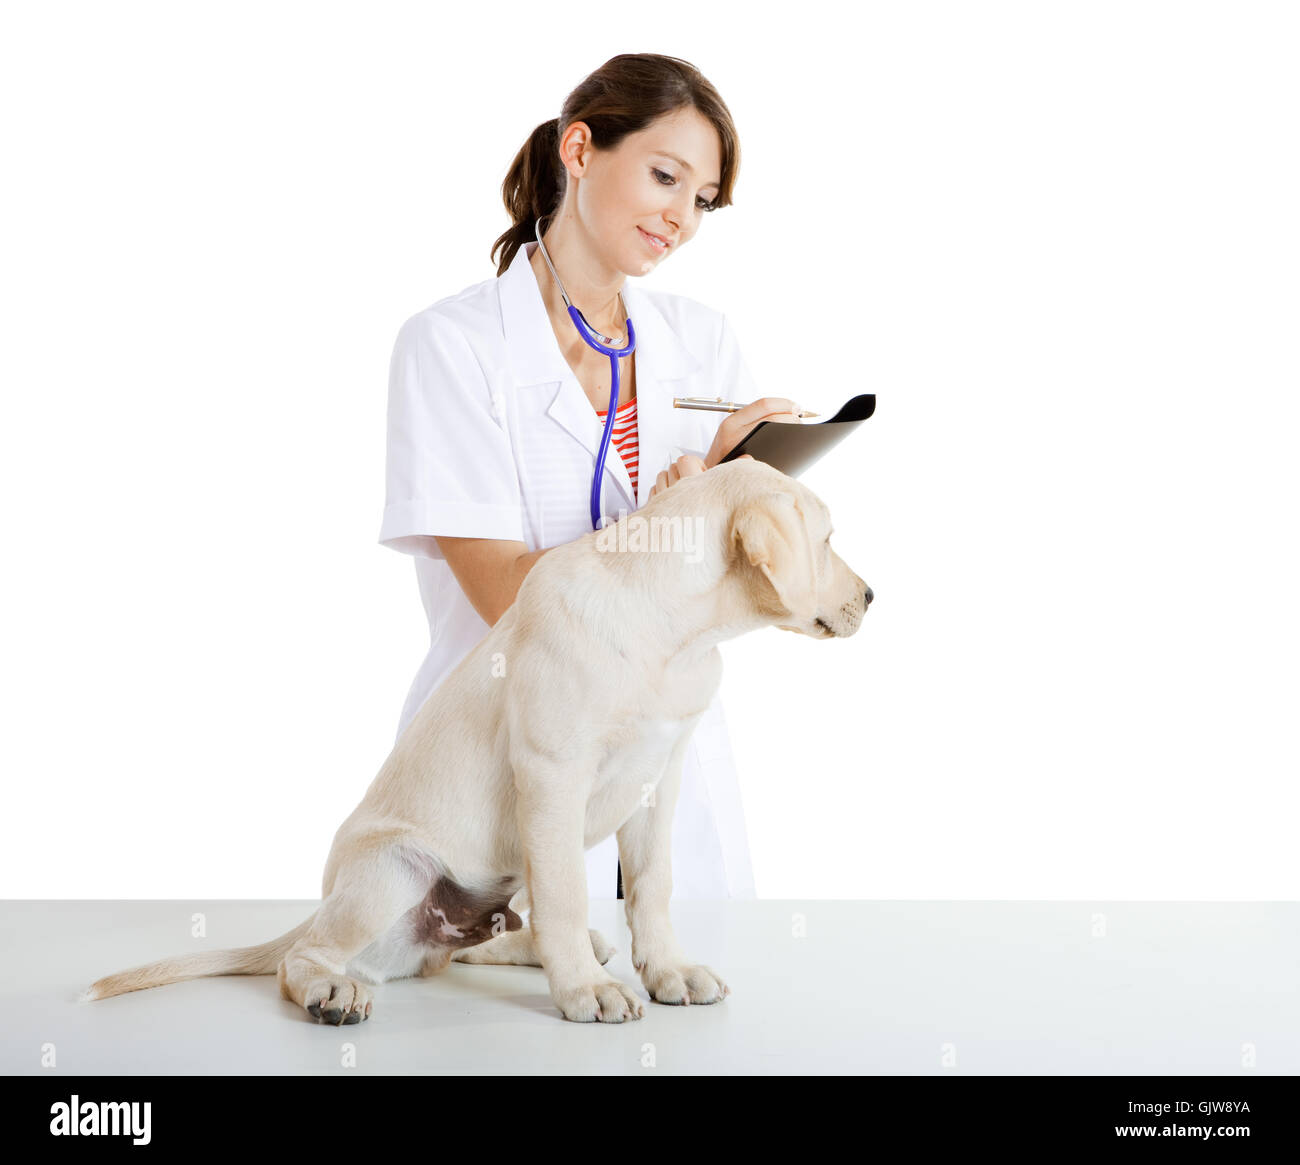 woman female animal - Stock Image